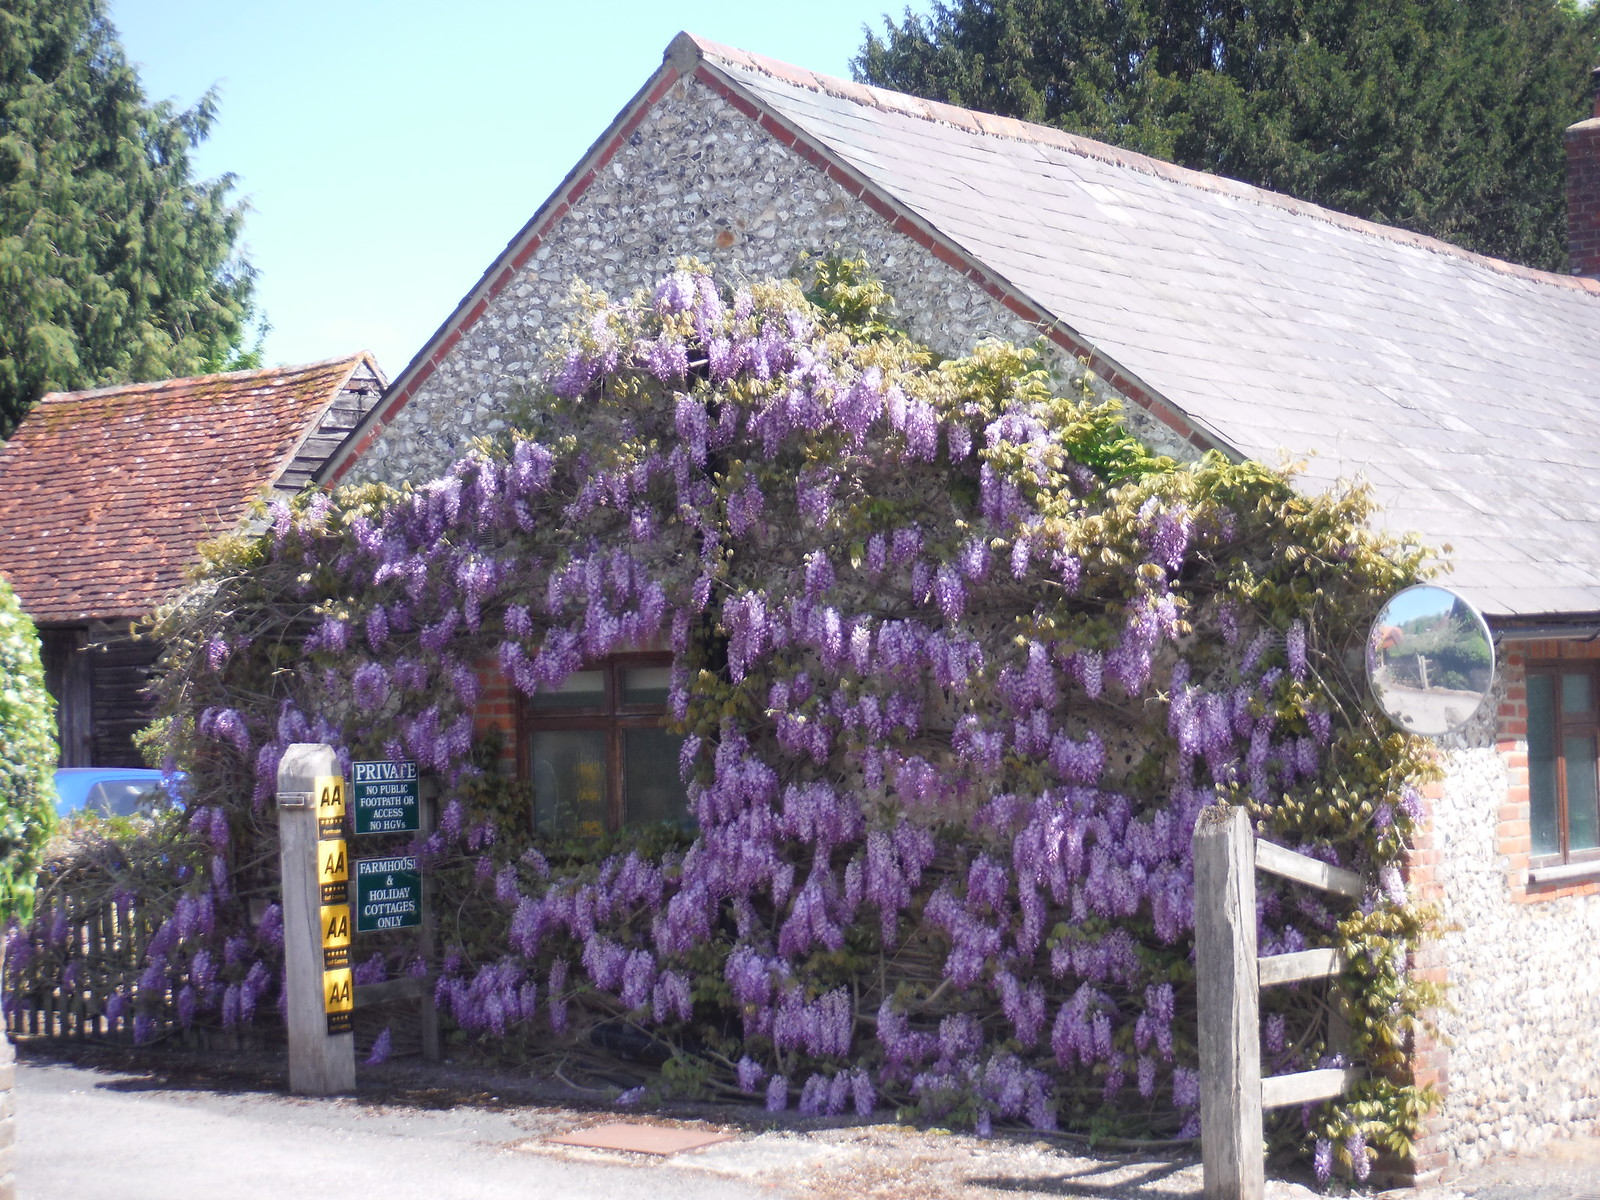 Wisteria-infested Cottage, West Marden SWC Walk Rowlands Castle Circular